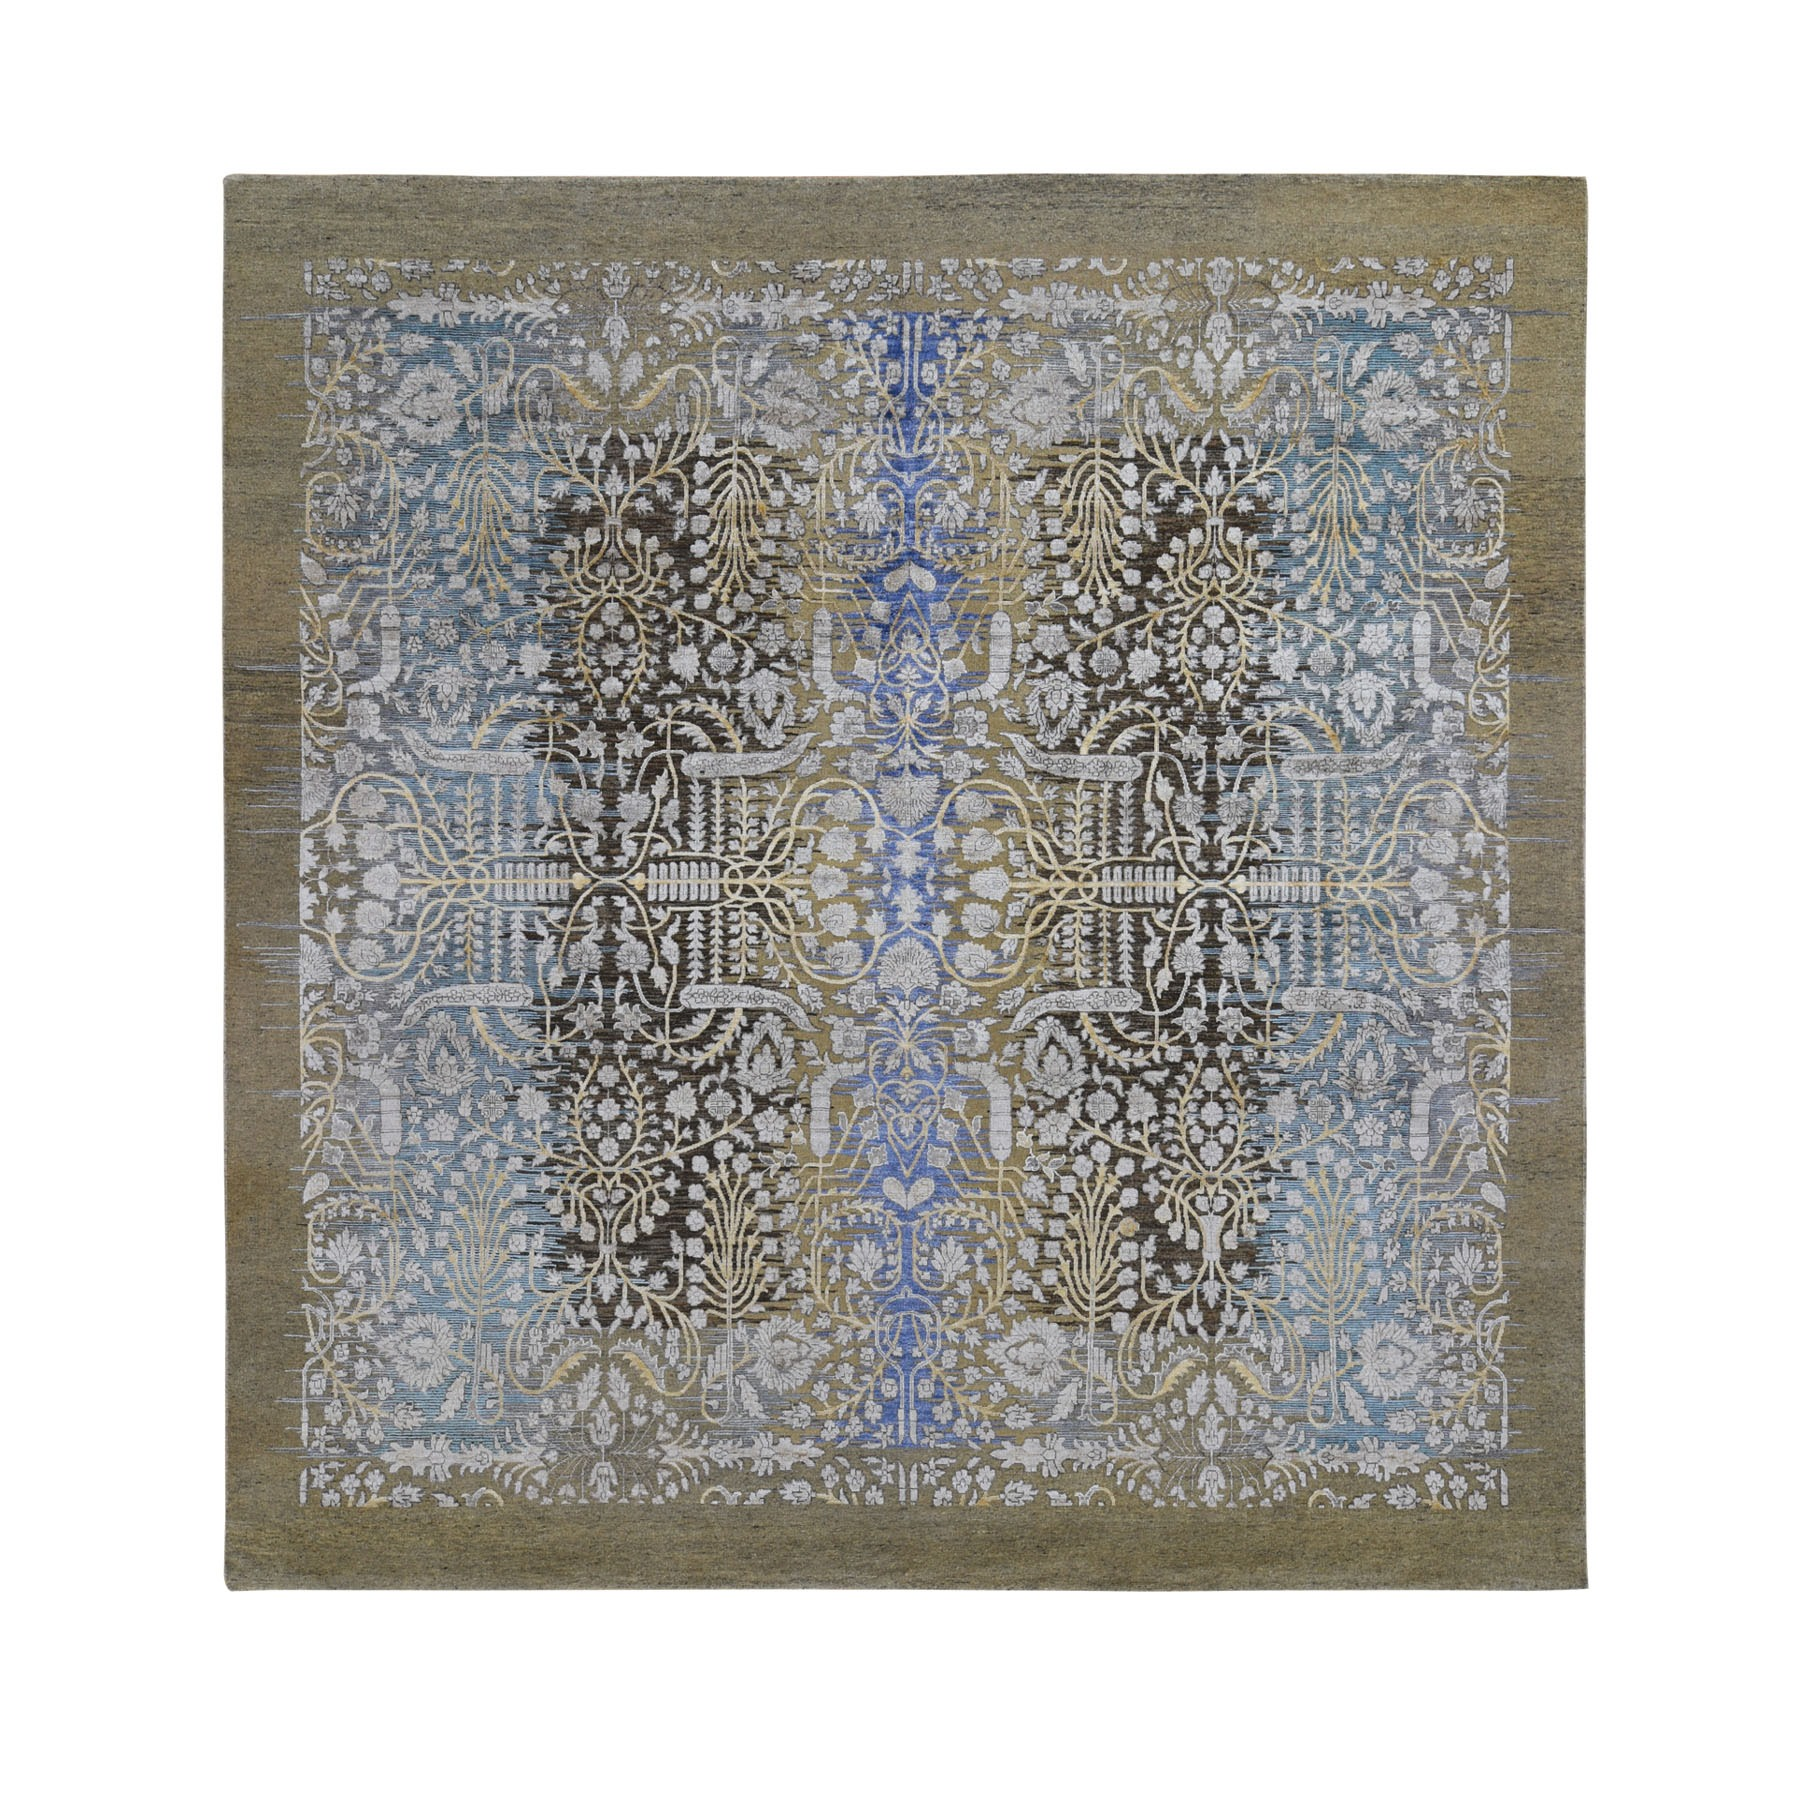 10'X10' Square Silk With Textured Wool Transitional Sarouk Hand Knotted Oriental Rug moad7e6c